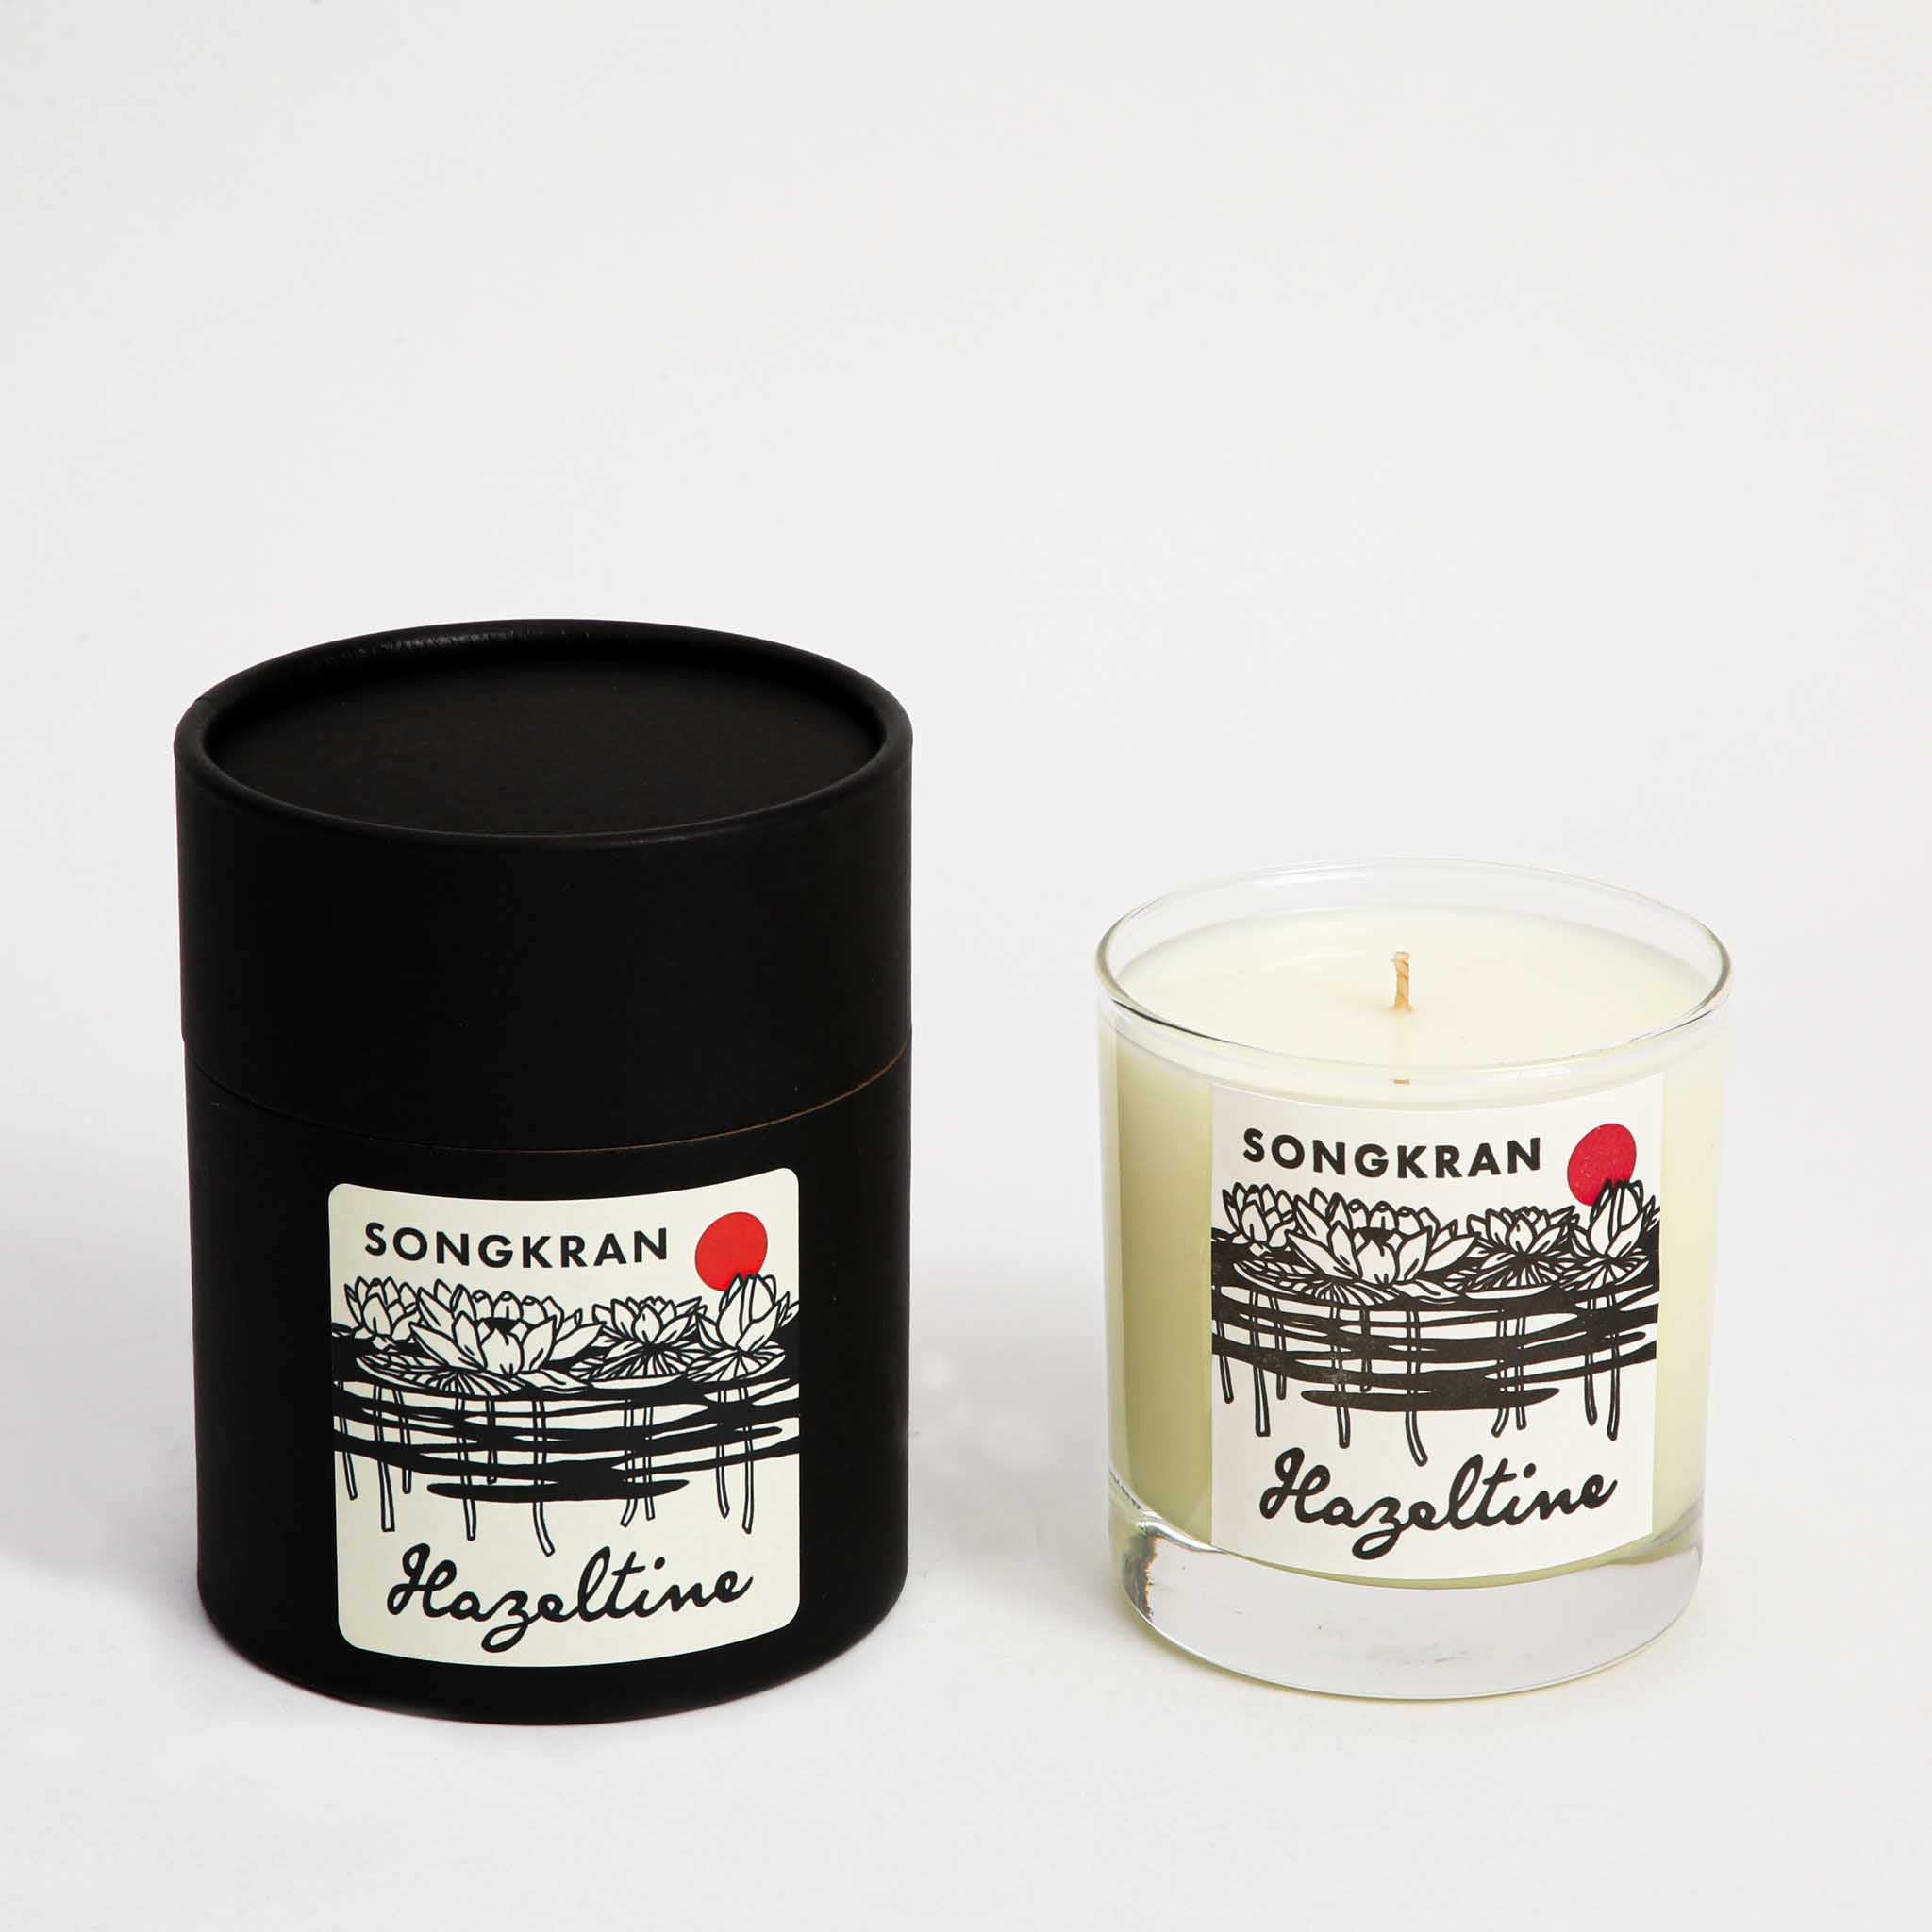 Songkran Scented Candle with Box